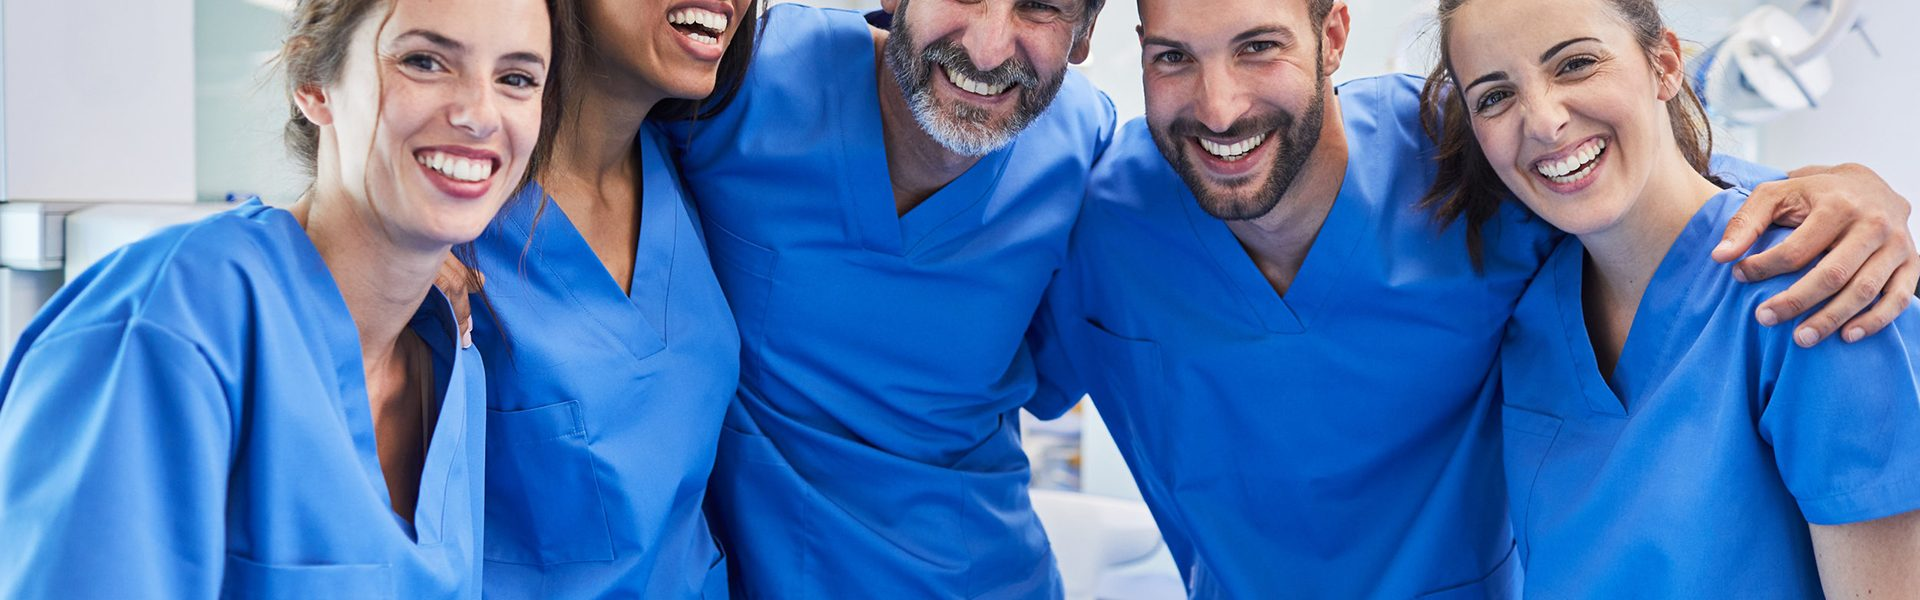 5 Ways to Motivate Your Dental Team